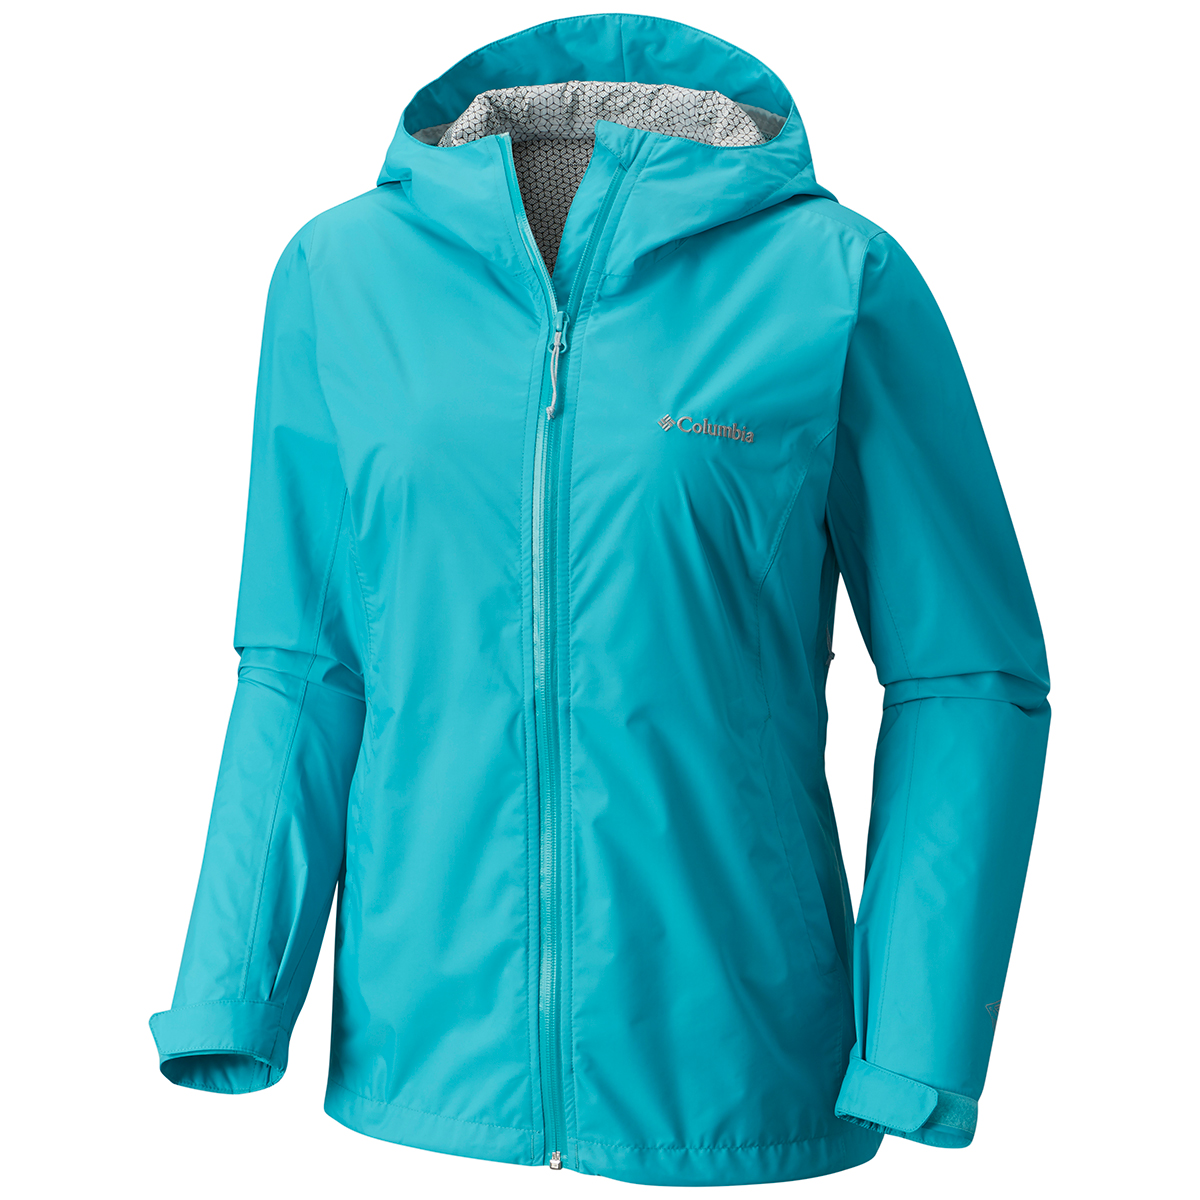 Columbia Women's Evapouration Jacket - Green, M